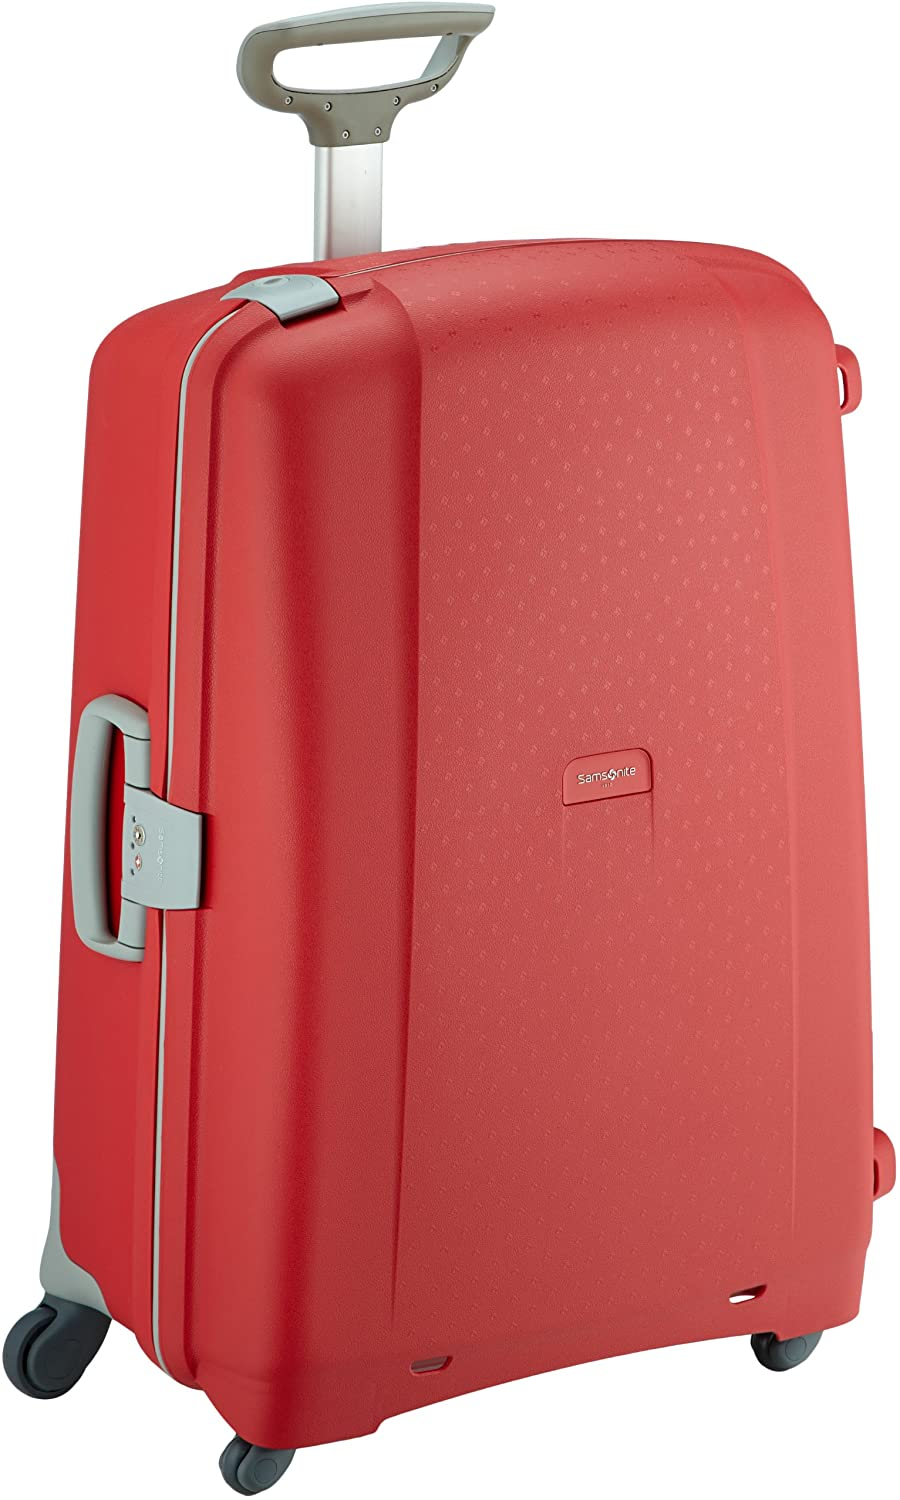 Samsonite Aeris Spinner L Maleta, 75 cm, 87.5 L, Rojo (Red)